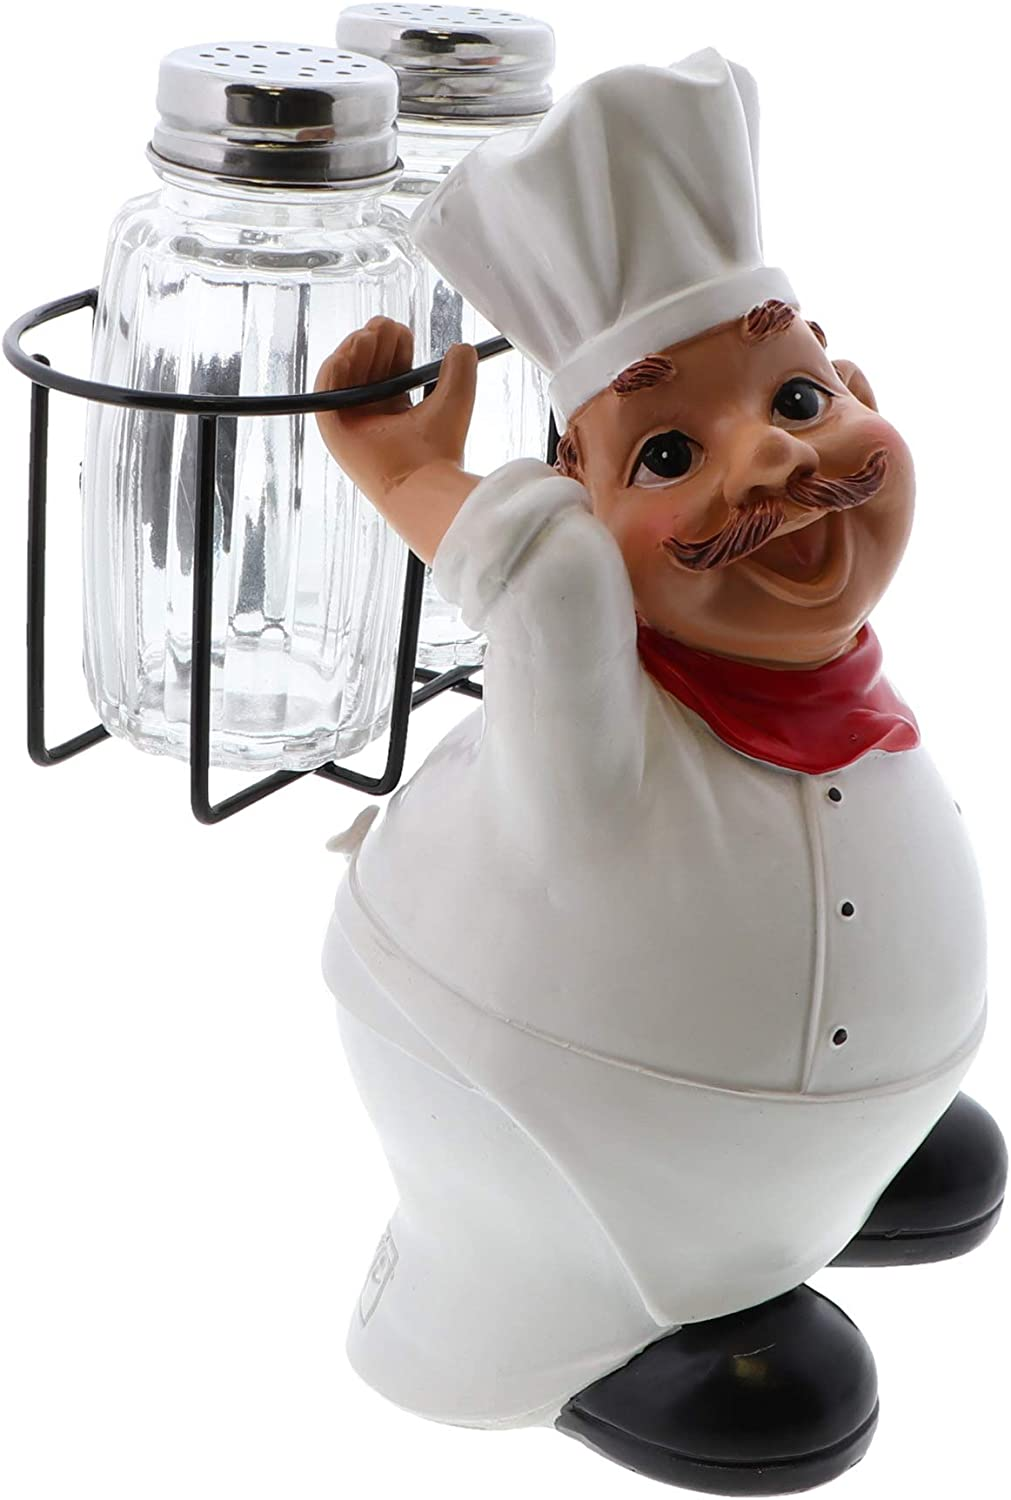 Fat Chef Kitchen Décor Novelty Salt and Pepper Shaker Set with Stand - Chef